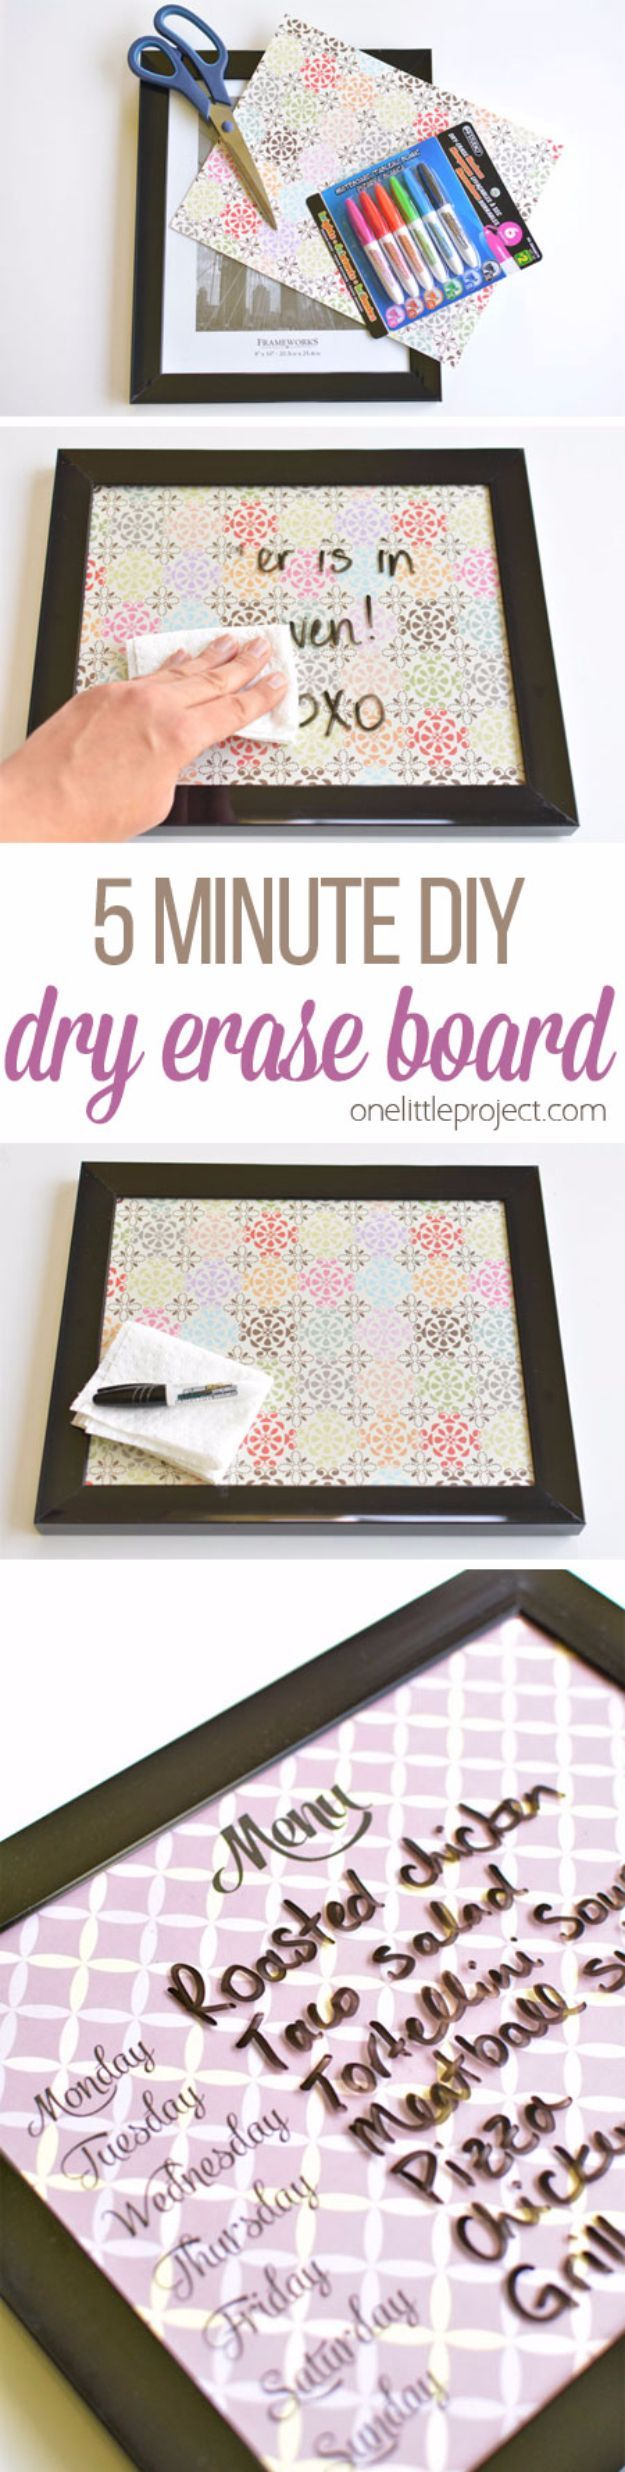 Best 25 Crafts to make ideas on Pinterest Simple crafts Cool